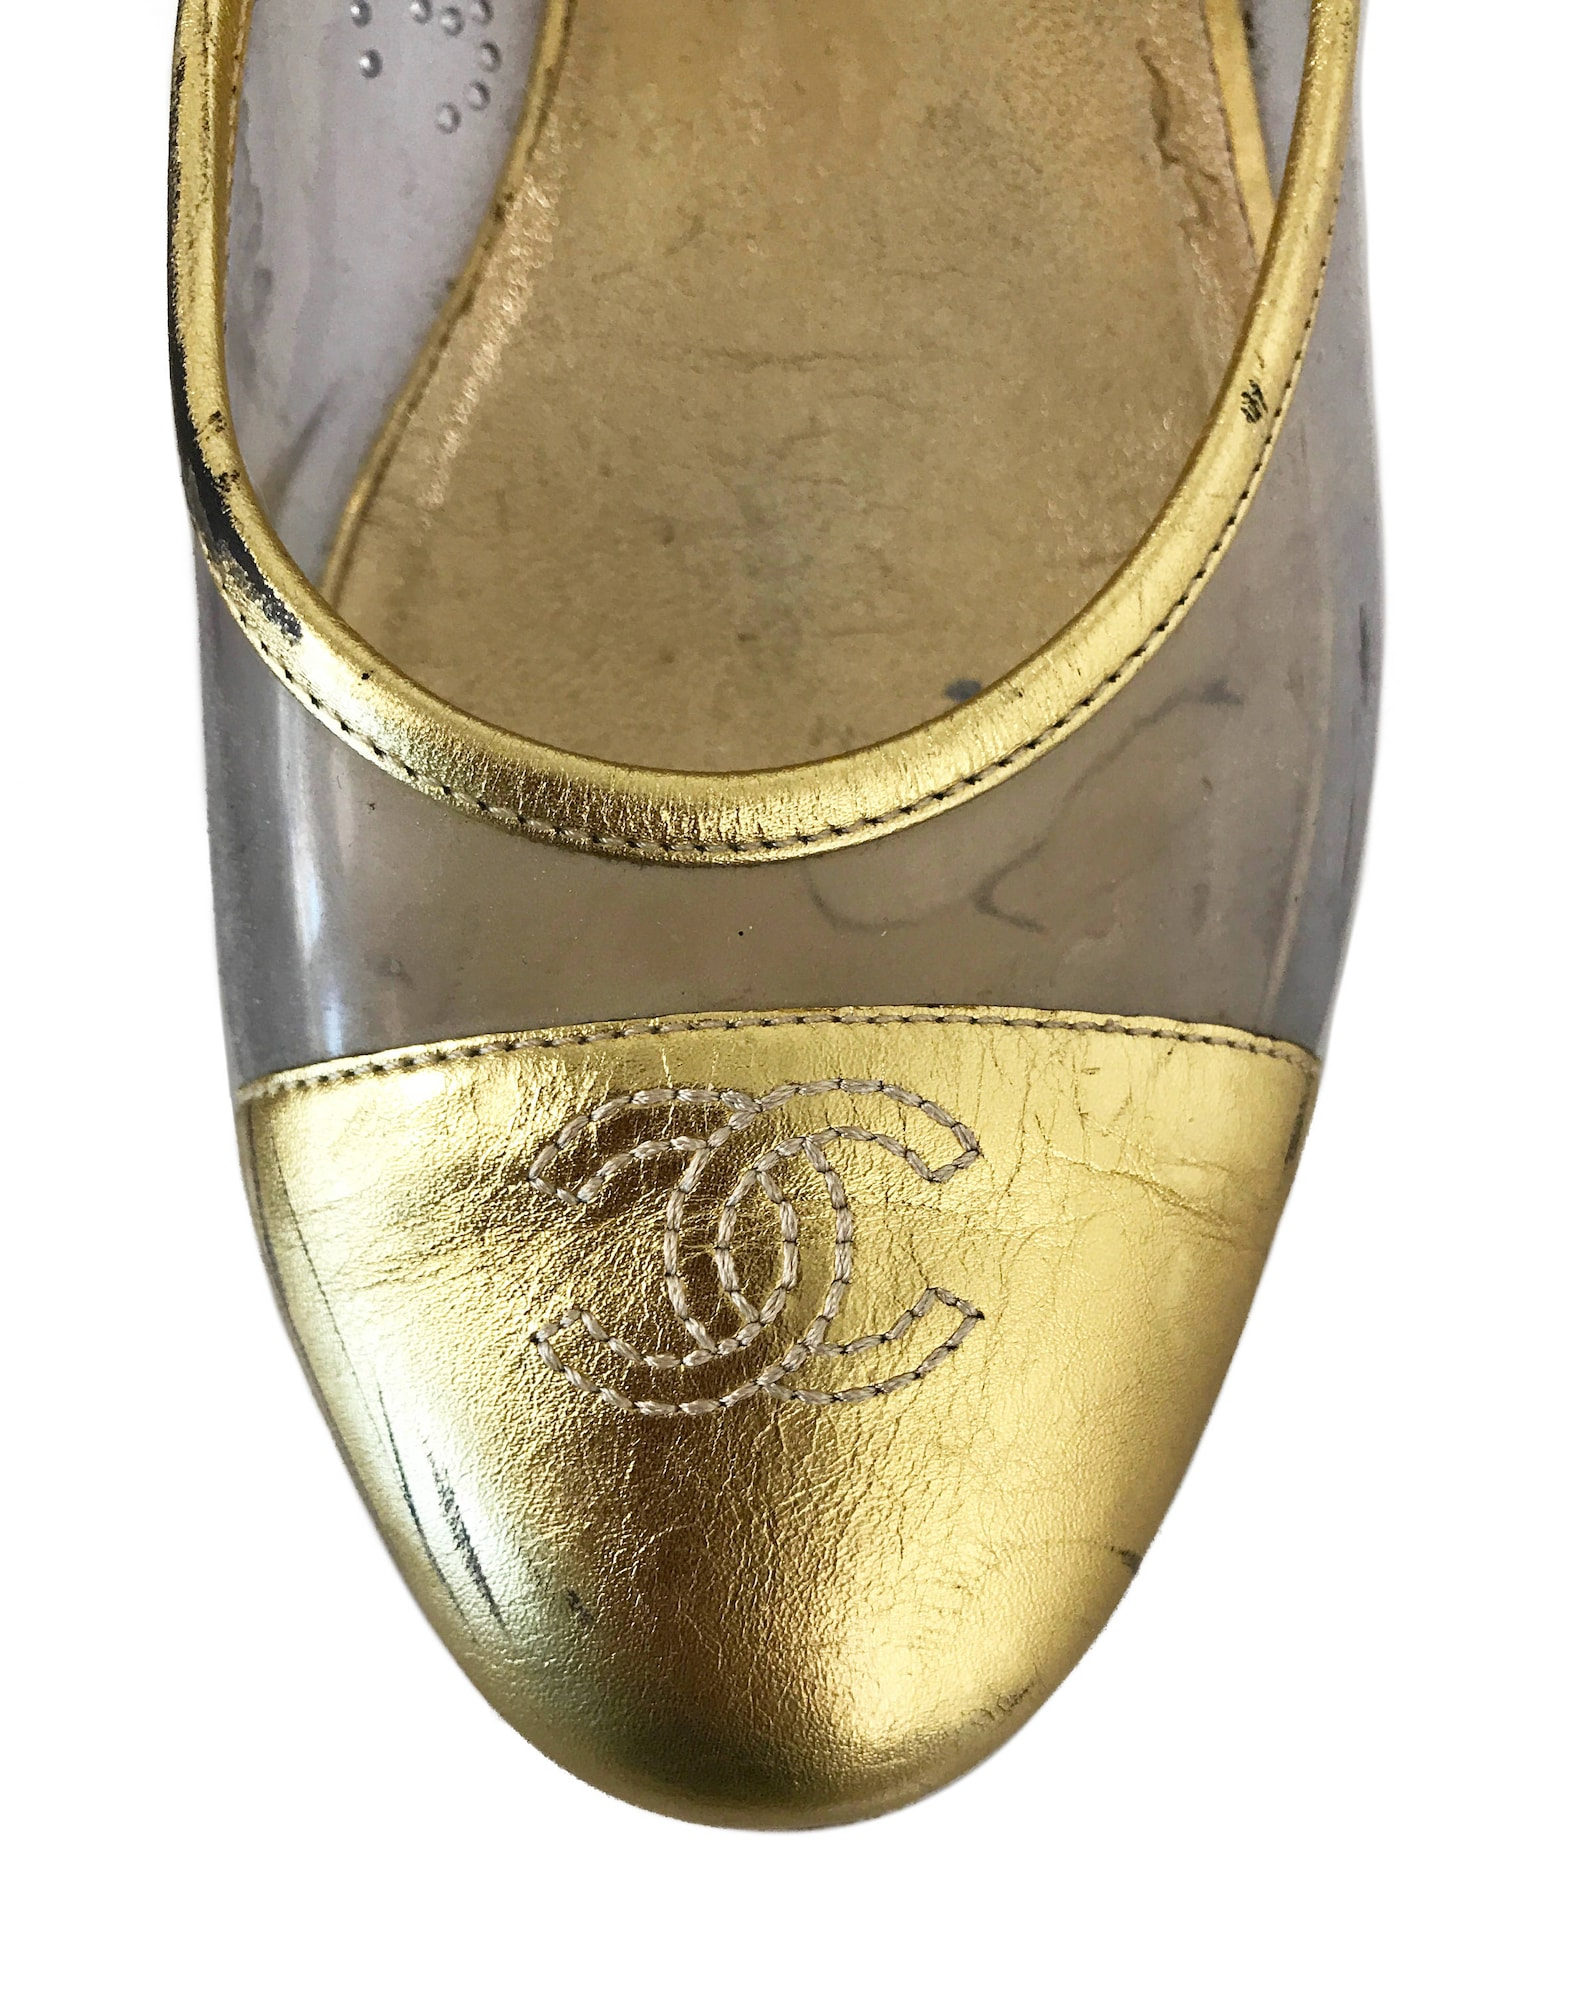 chanel vintage gold clear ballet flats perspex slipper sz 38.5 shoes